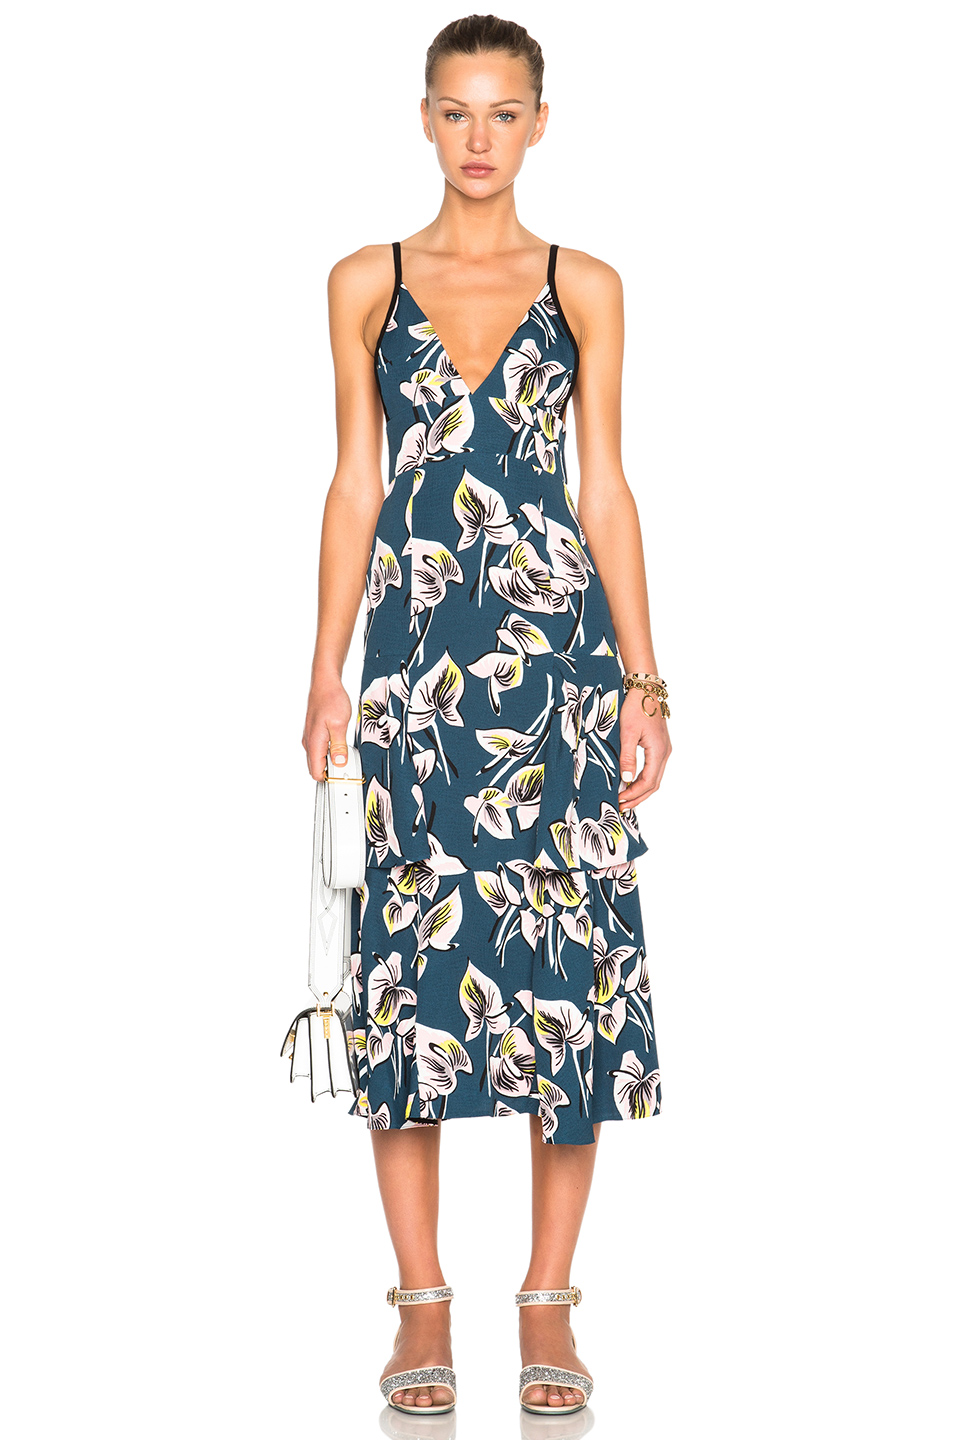 Marni Printed Tiered Tank Dress in Green,Blue,Floral